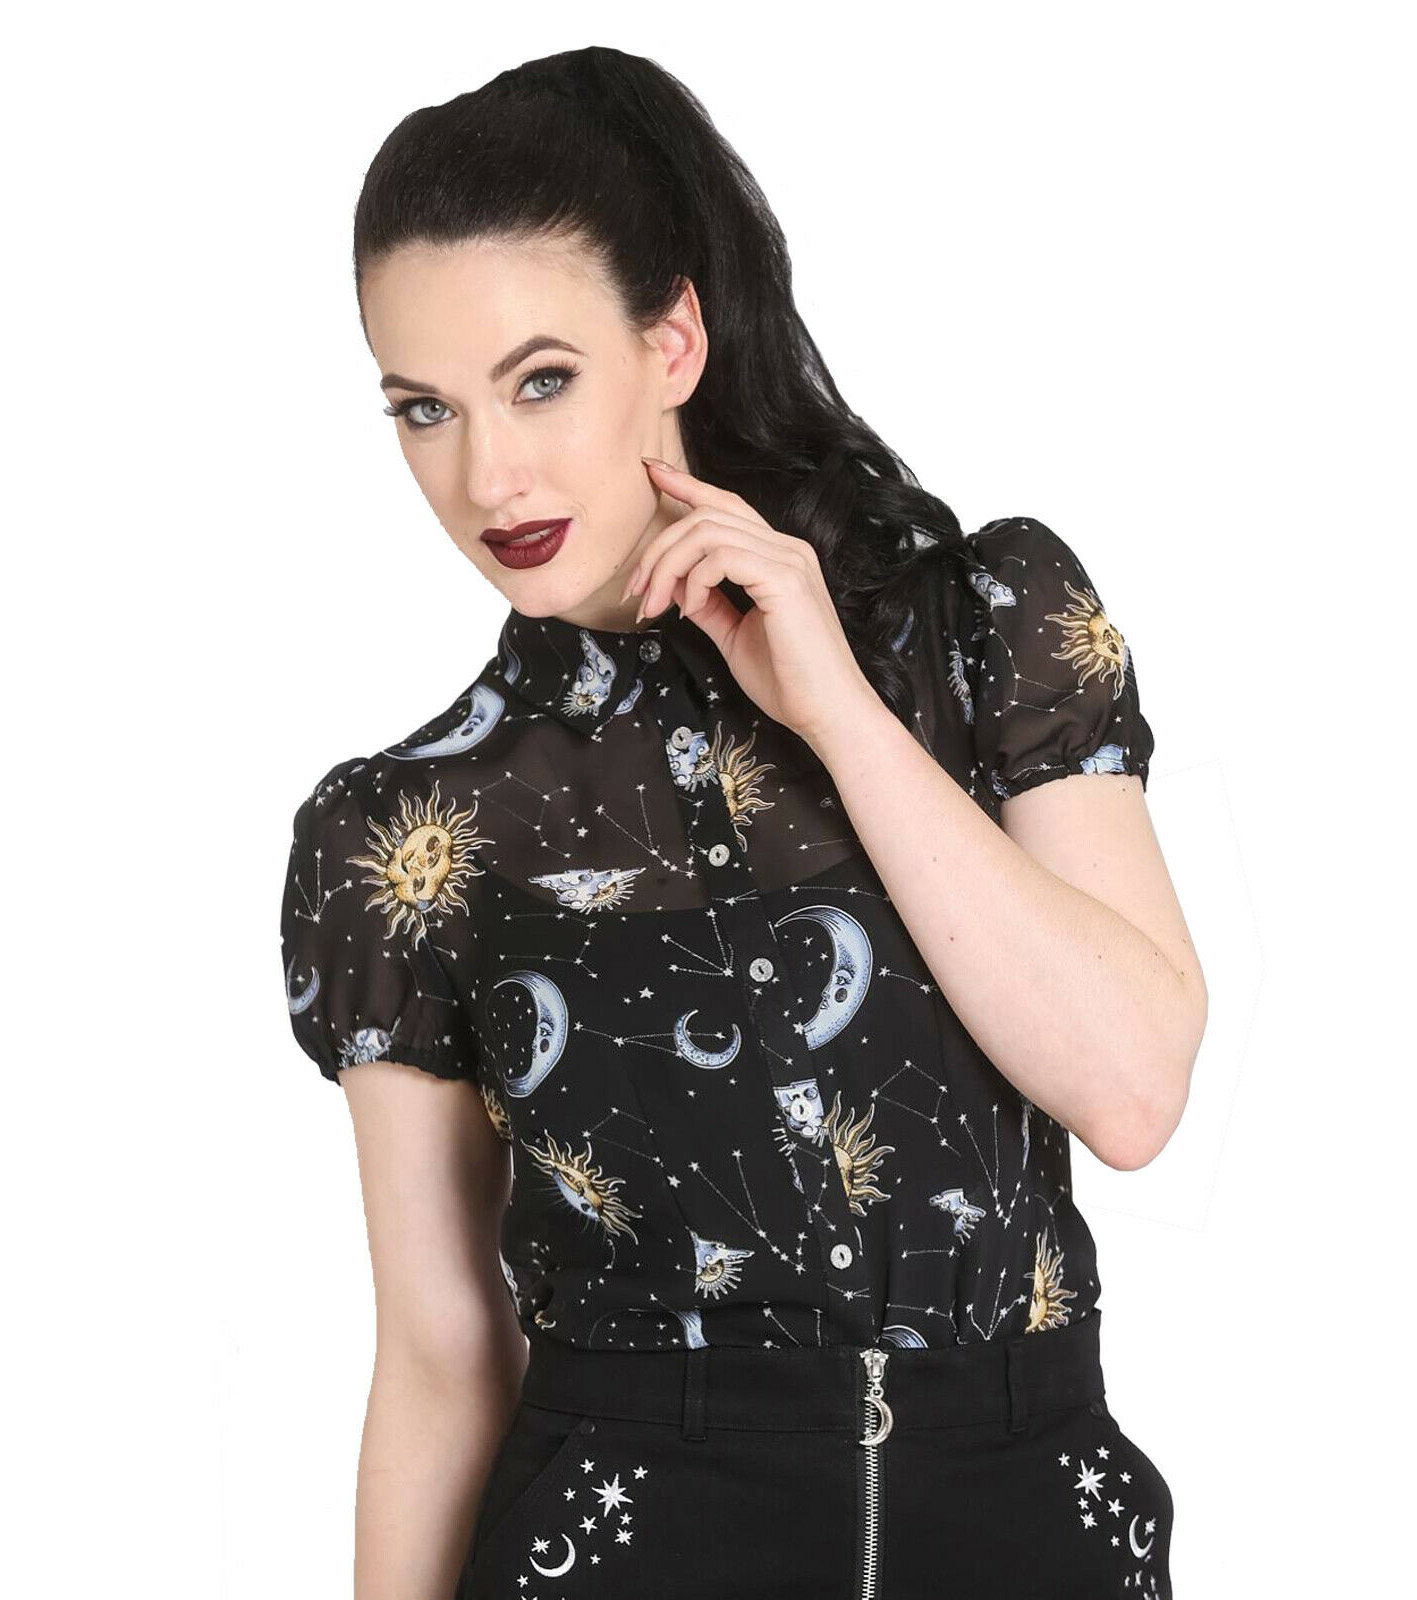 Hell-Bunny-50s-Shirt-Top-Gothic-Black-Sun-Moon-Stars-SOLARIS-Blouse-All-Sizes thumbnail 9